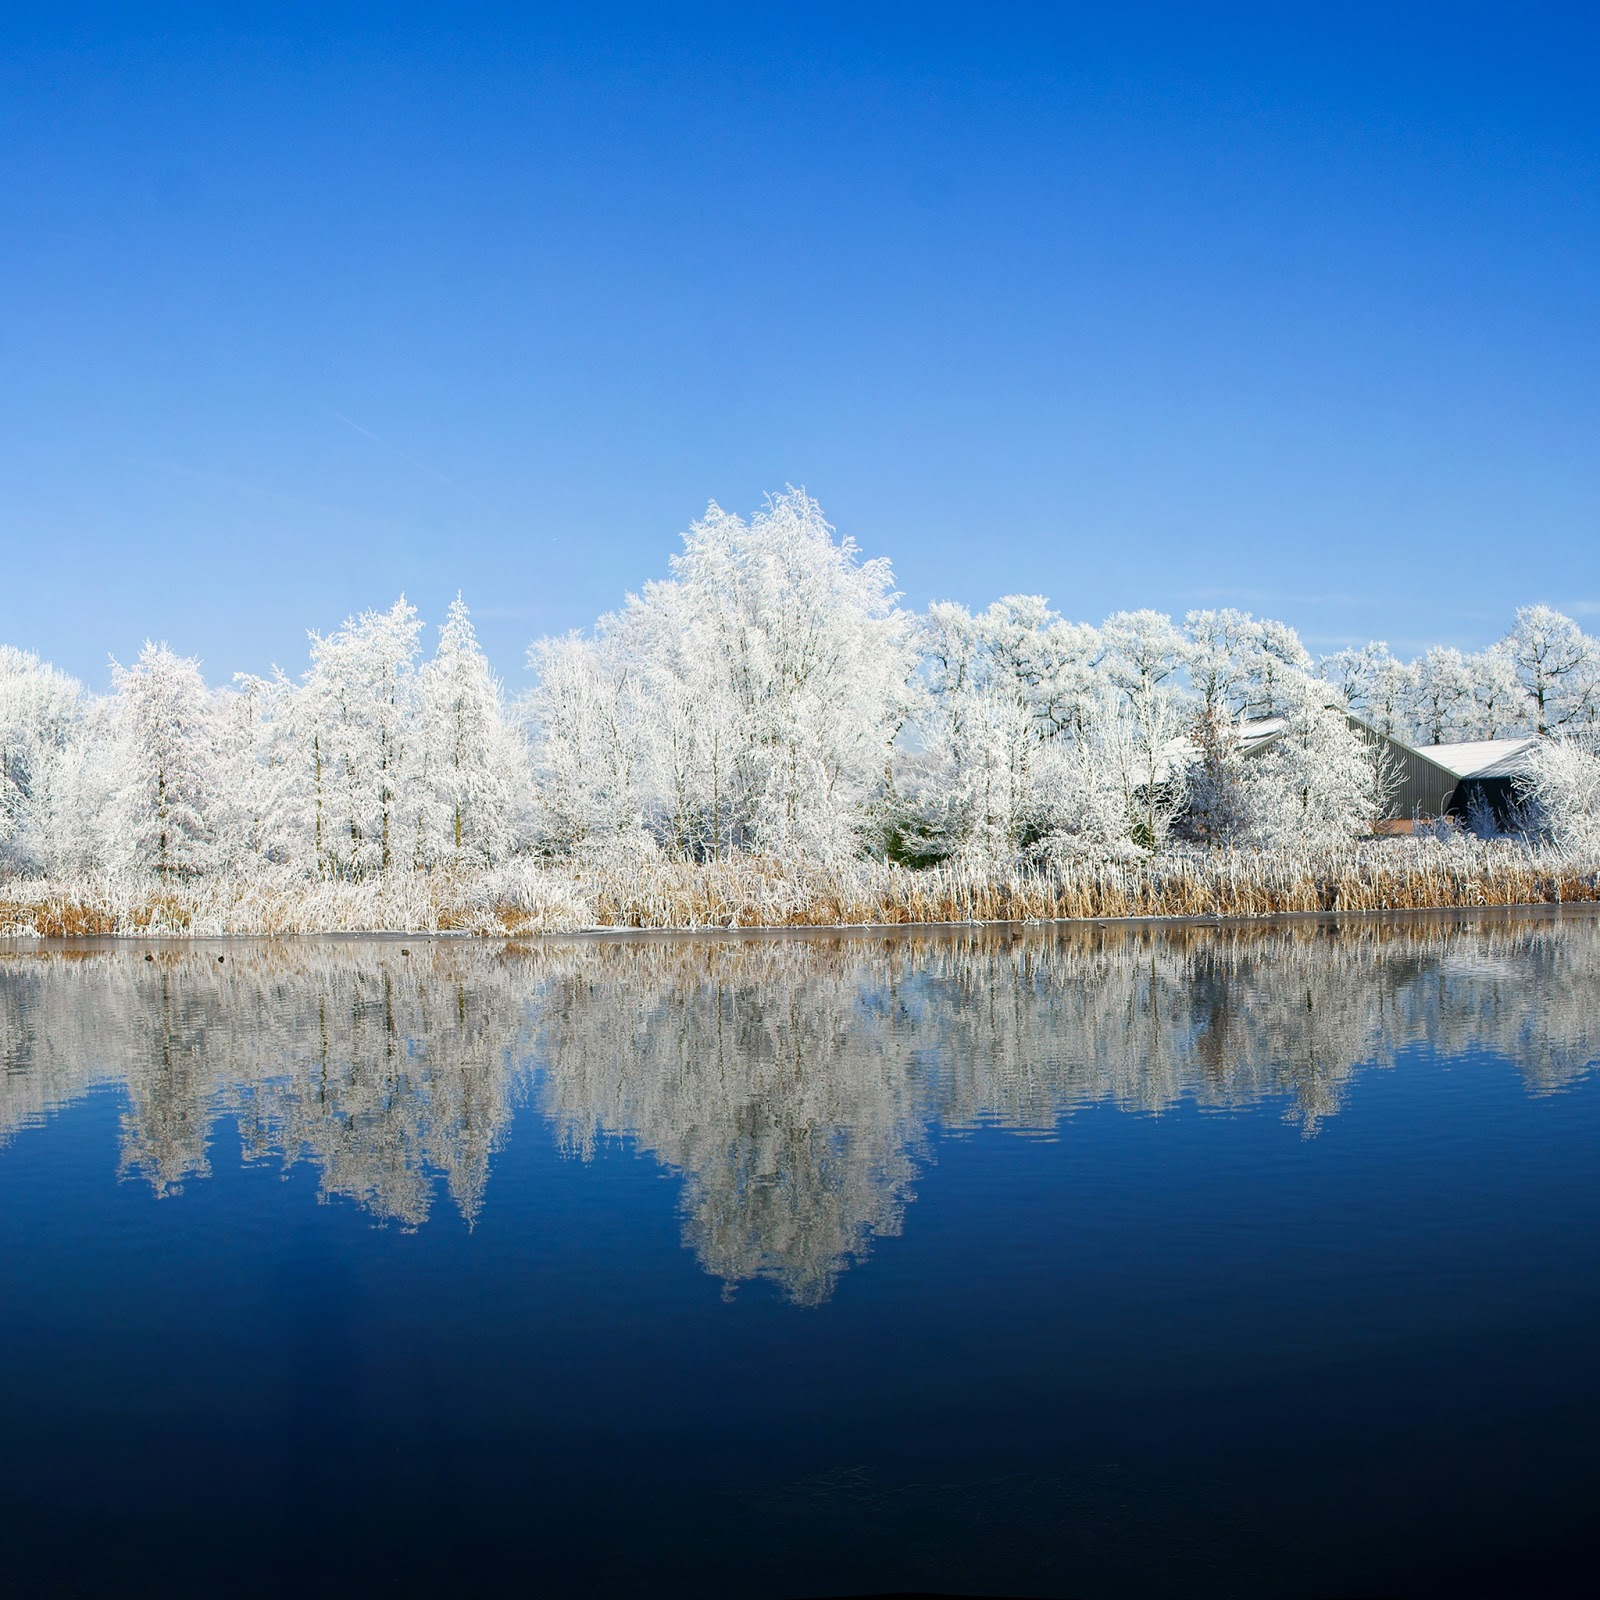 Winter Wallpaper: Winter Themed HD Wallpapers For IPad 4